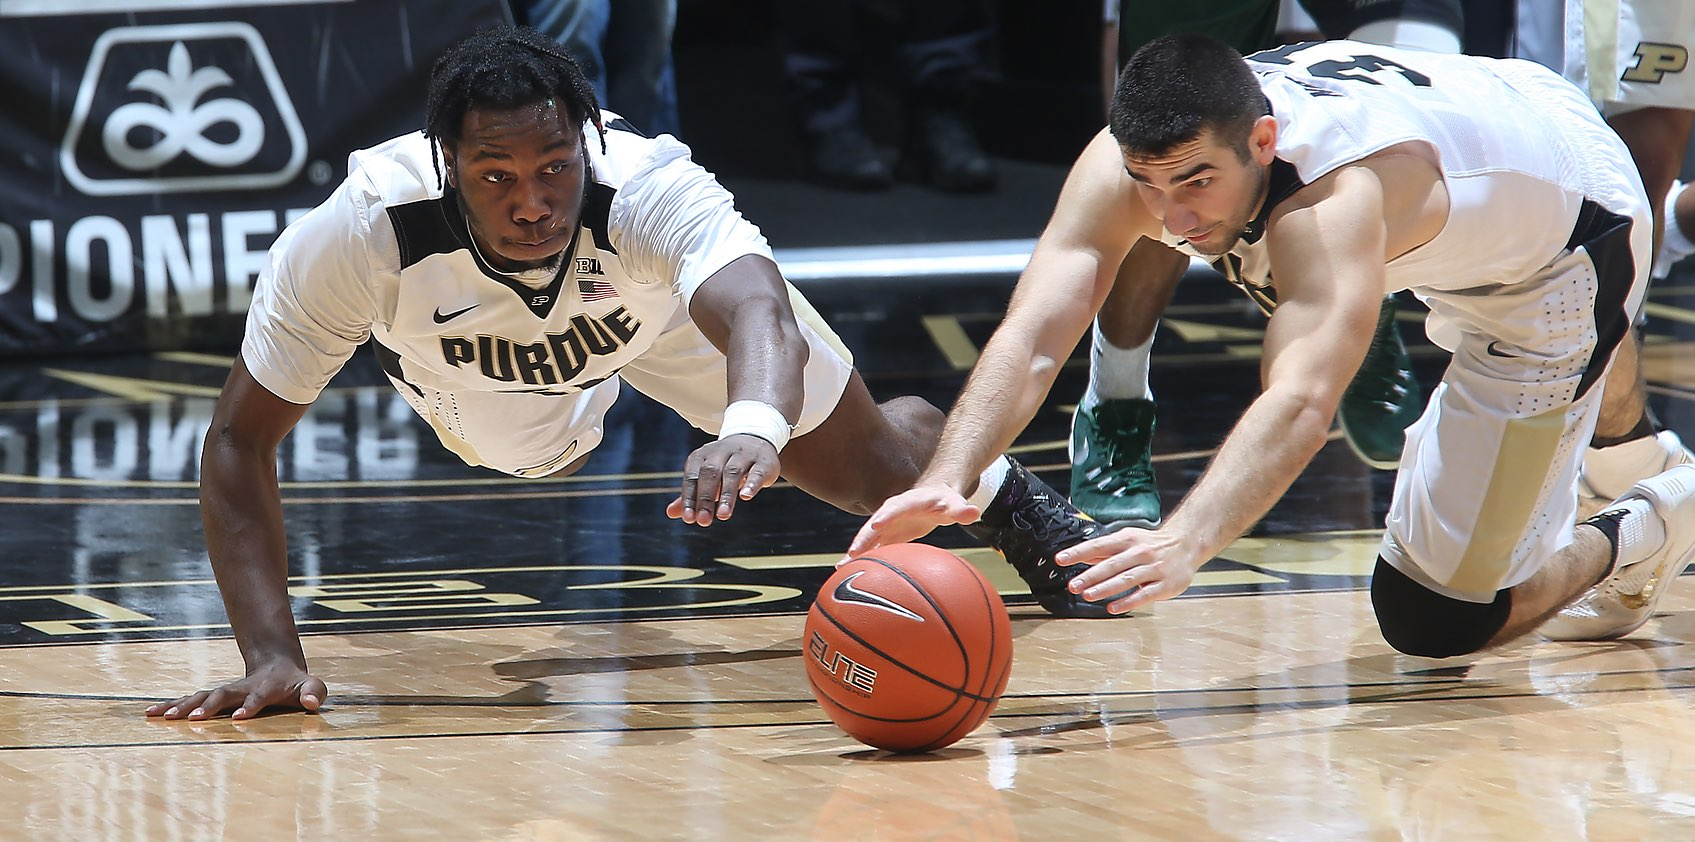 Another loose ball going Purdue's way